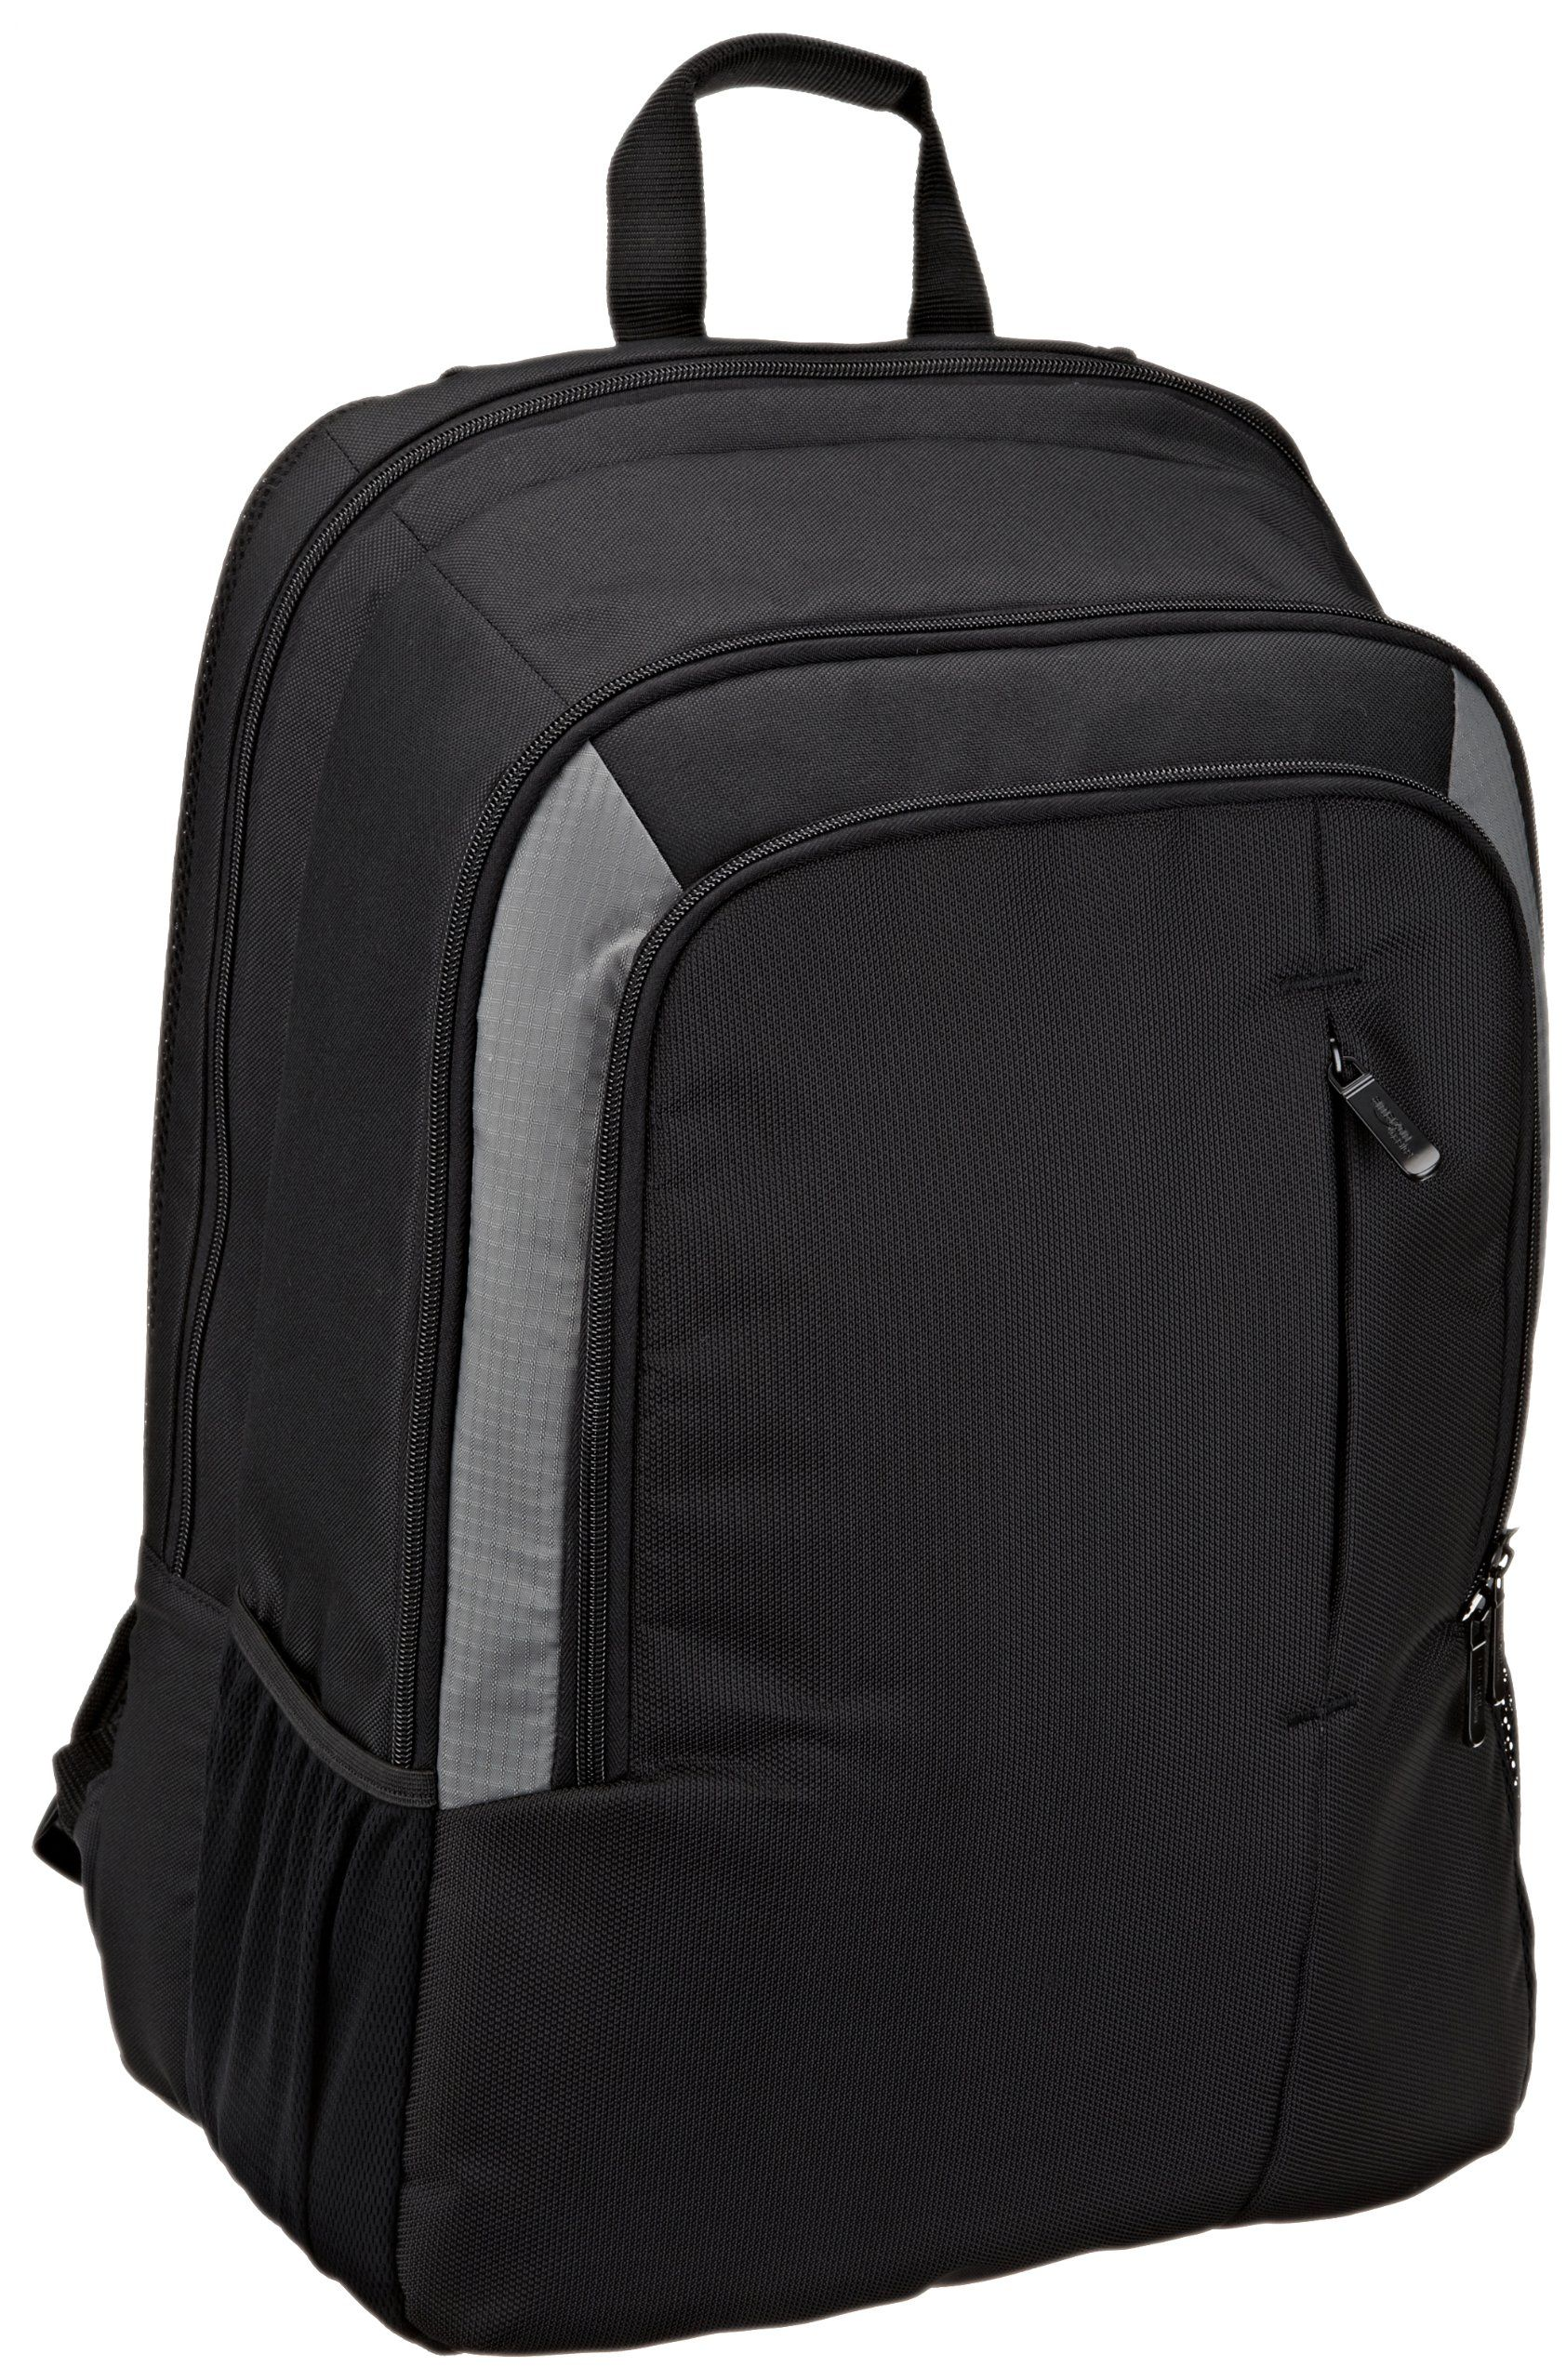 Diy laptop backpack - Amazonbasics Laptop Backpack Fits Up To 15 Inch Laptops